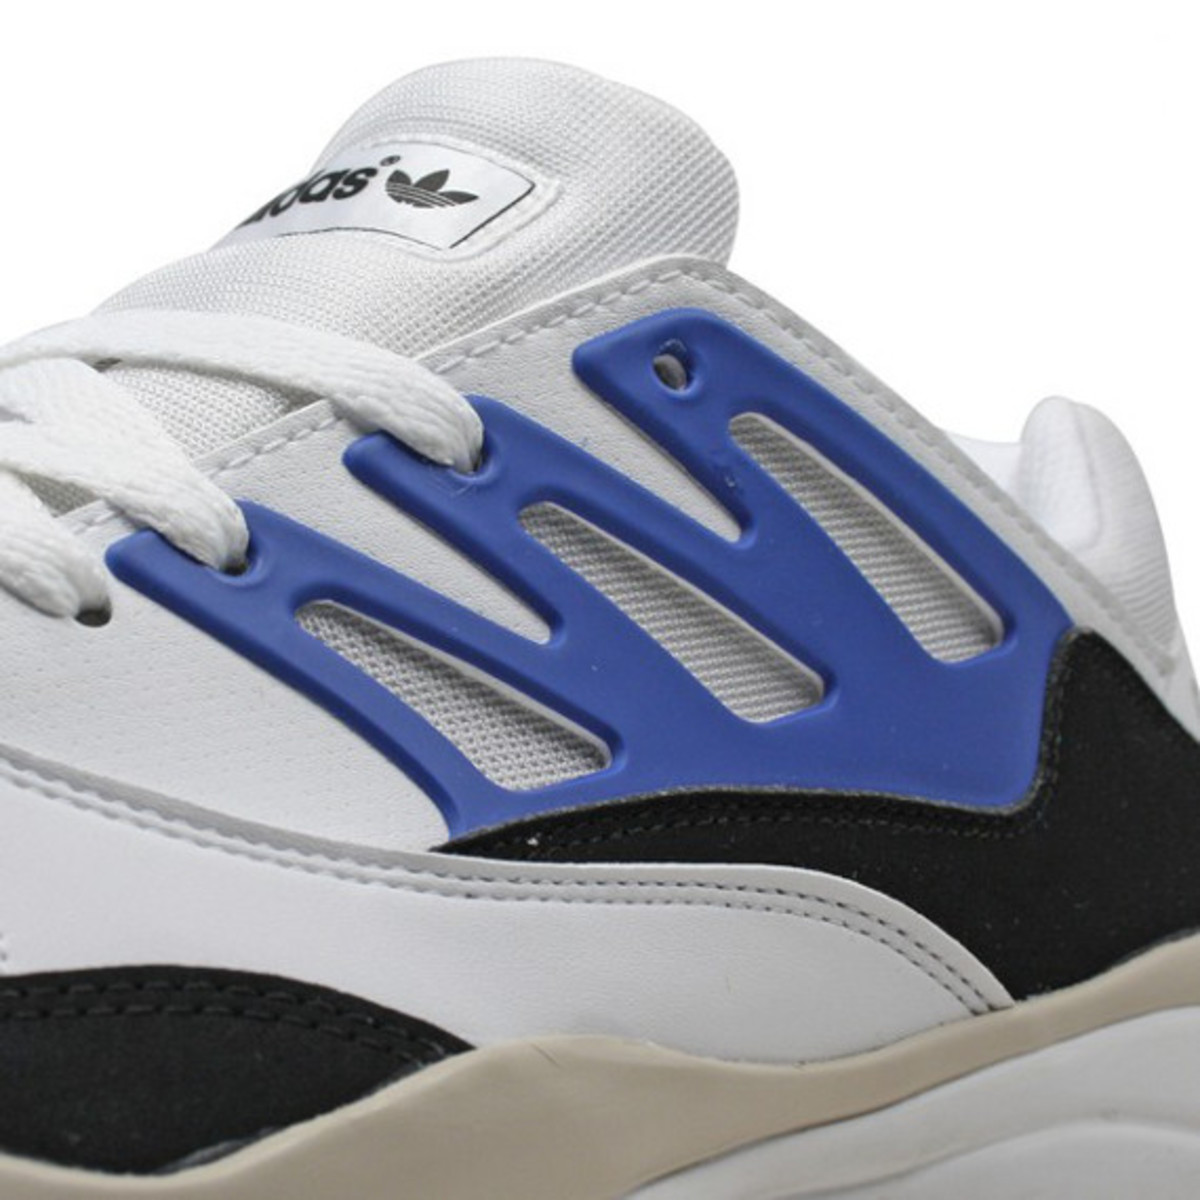 adidas-torsion-allegra-x-running-white-true-blue-black-05